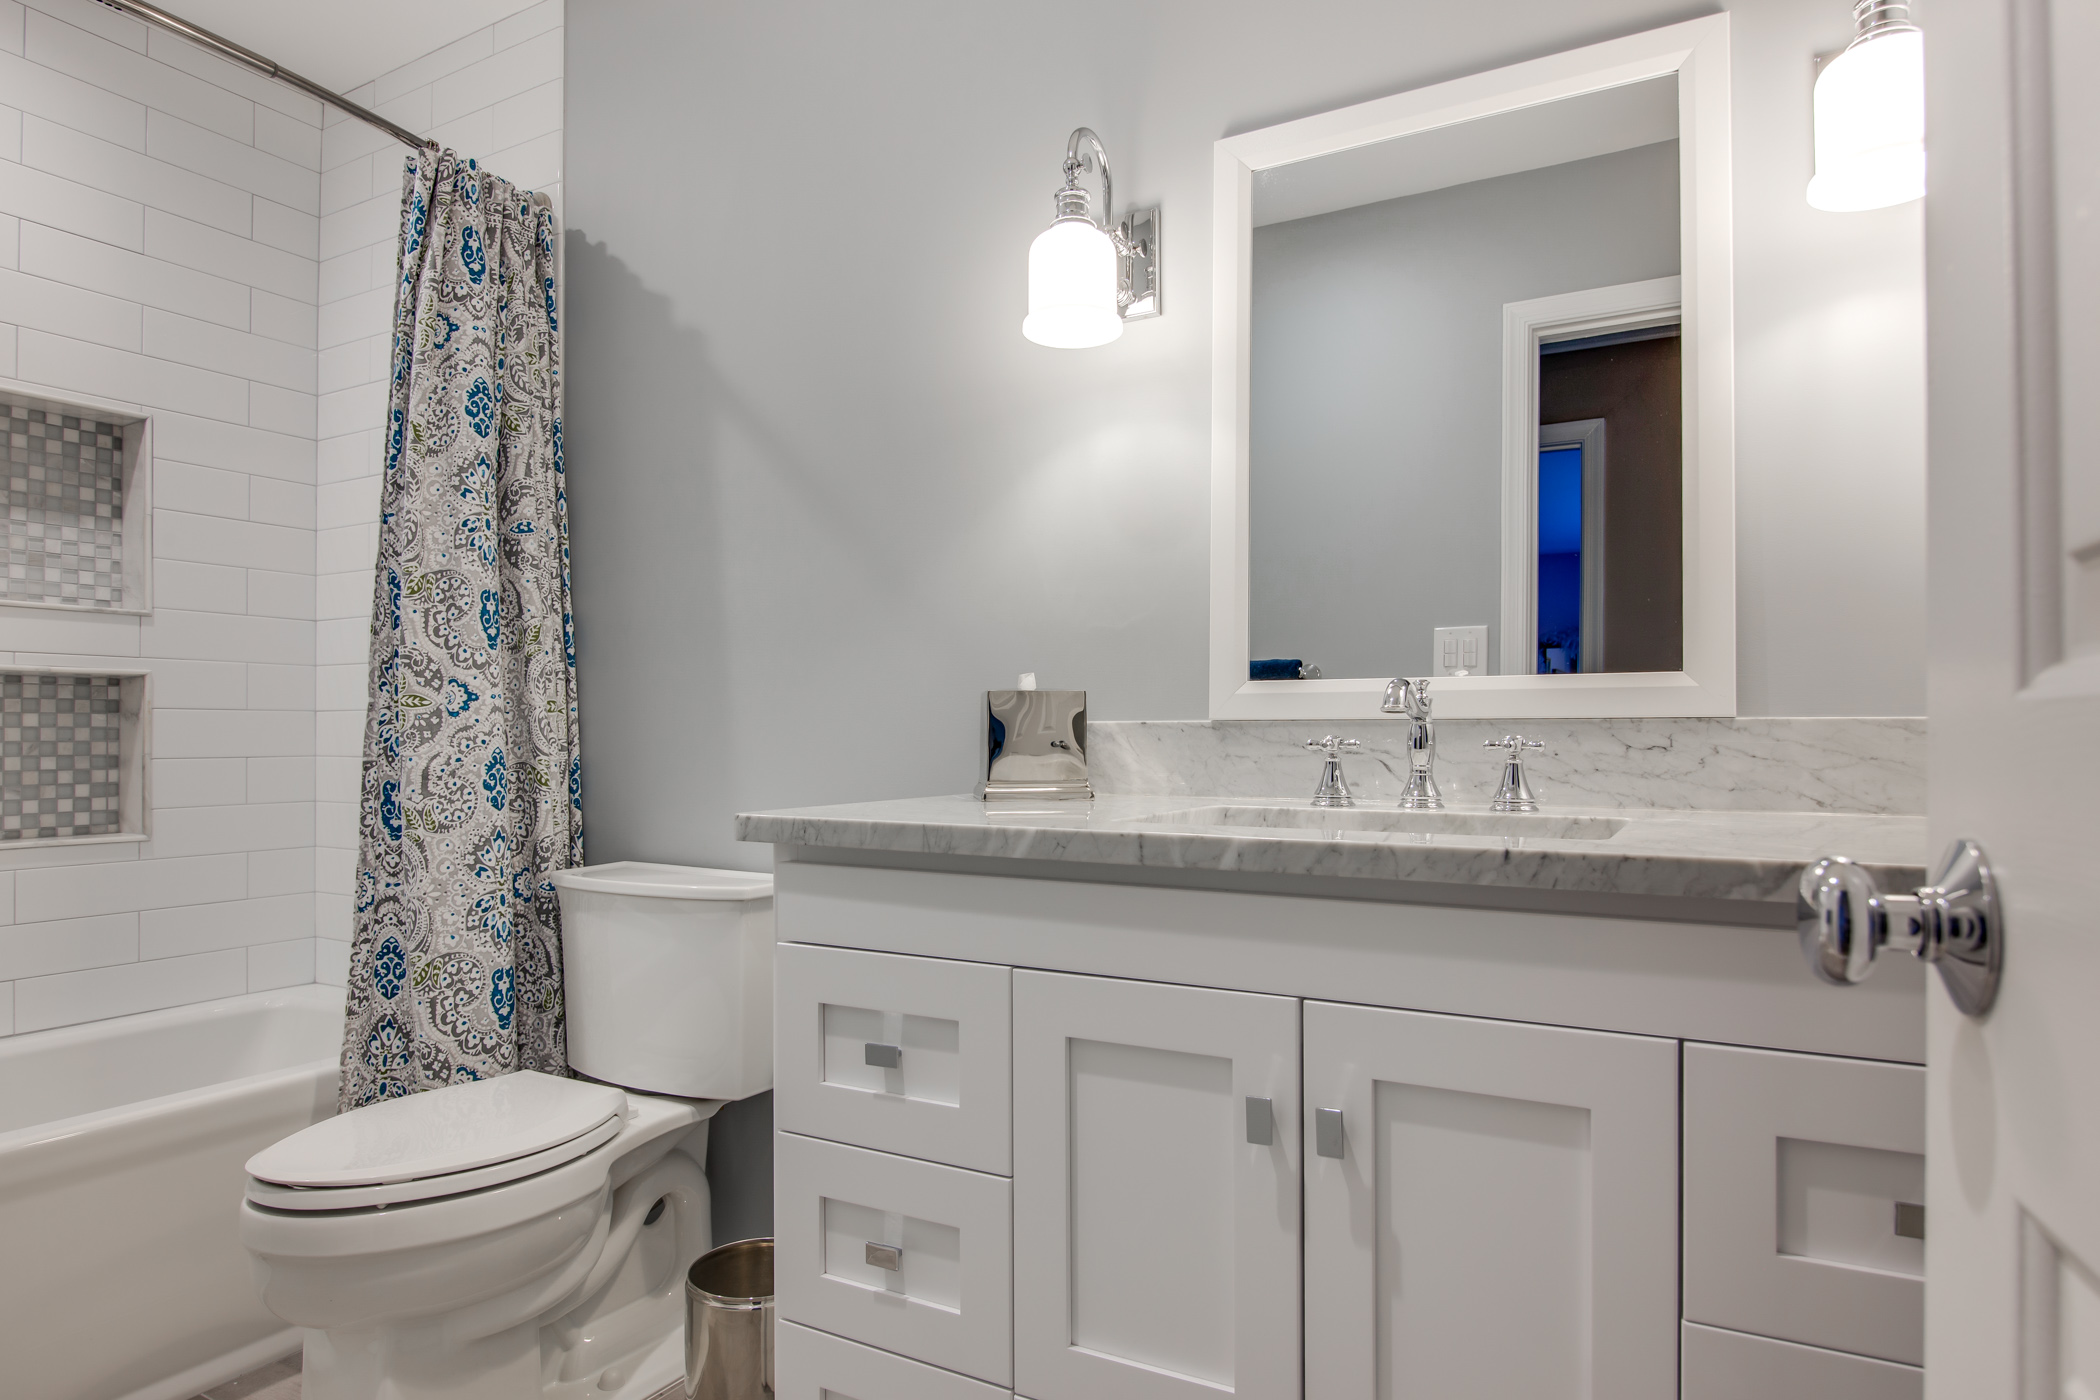 Bathroom Remodel Nj : Home remodeling tips ideas and photos in princeton nj